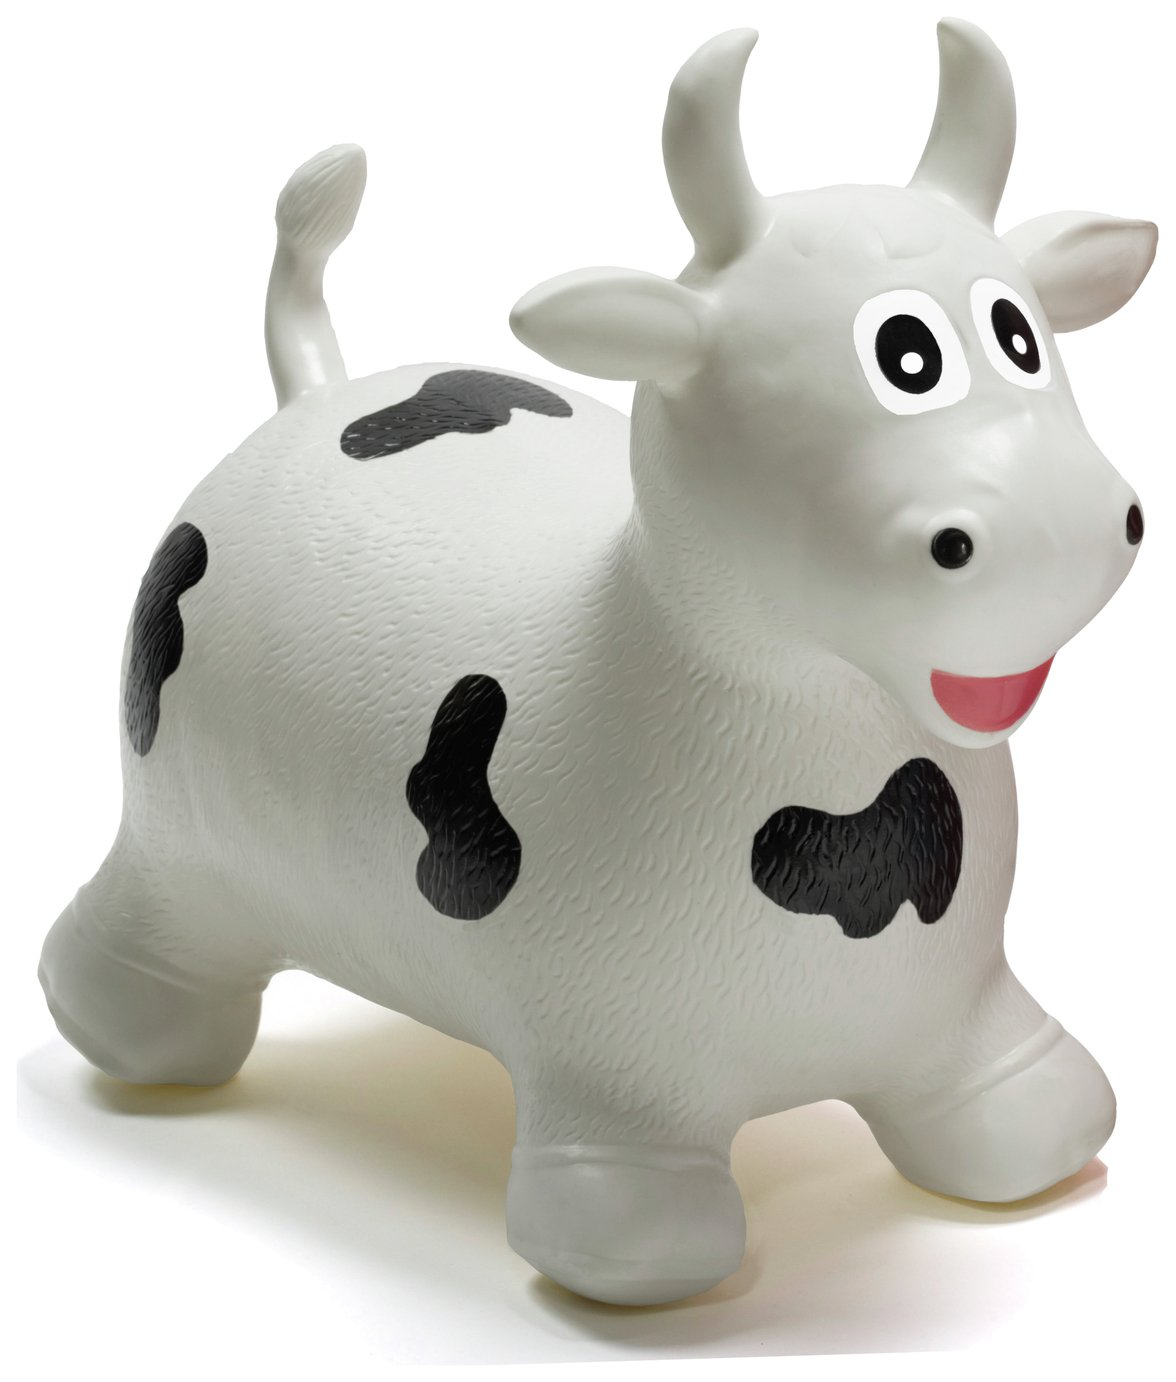 HappyHopperz Inflatable Bouncer Bull   White.